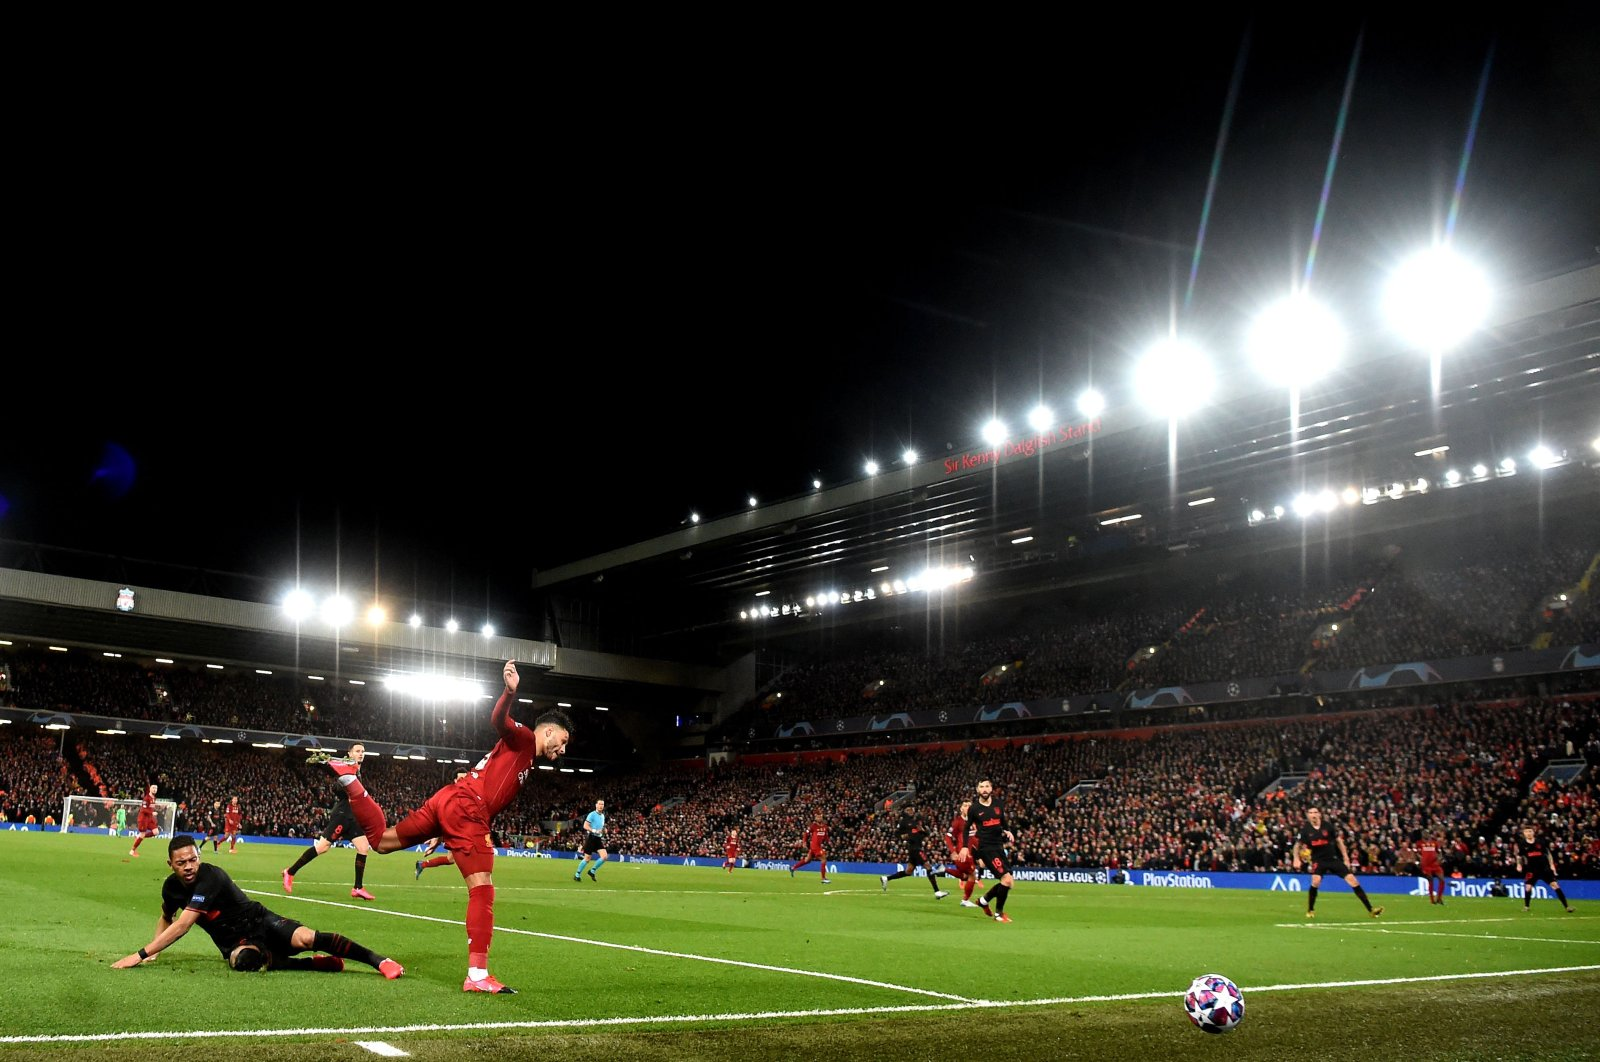 Liverpool's English midfielder Alex Oxlade-Chamberlain (2L) controls the ball during the UEFA Champions League Round of 16-second leg football match between Liverpool and Atletico Madrid at Anfield in Liverpool, England on March 11, 2020. (AFP Photo)